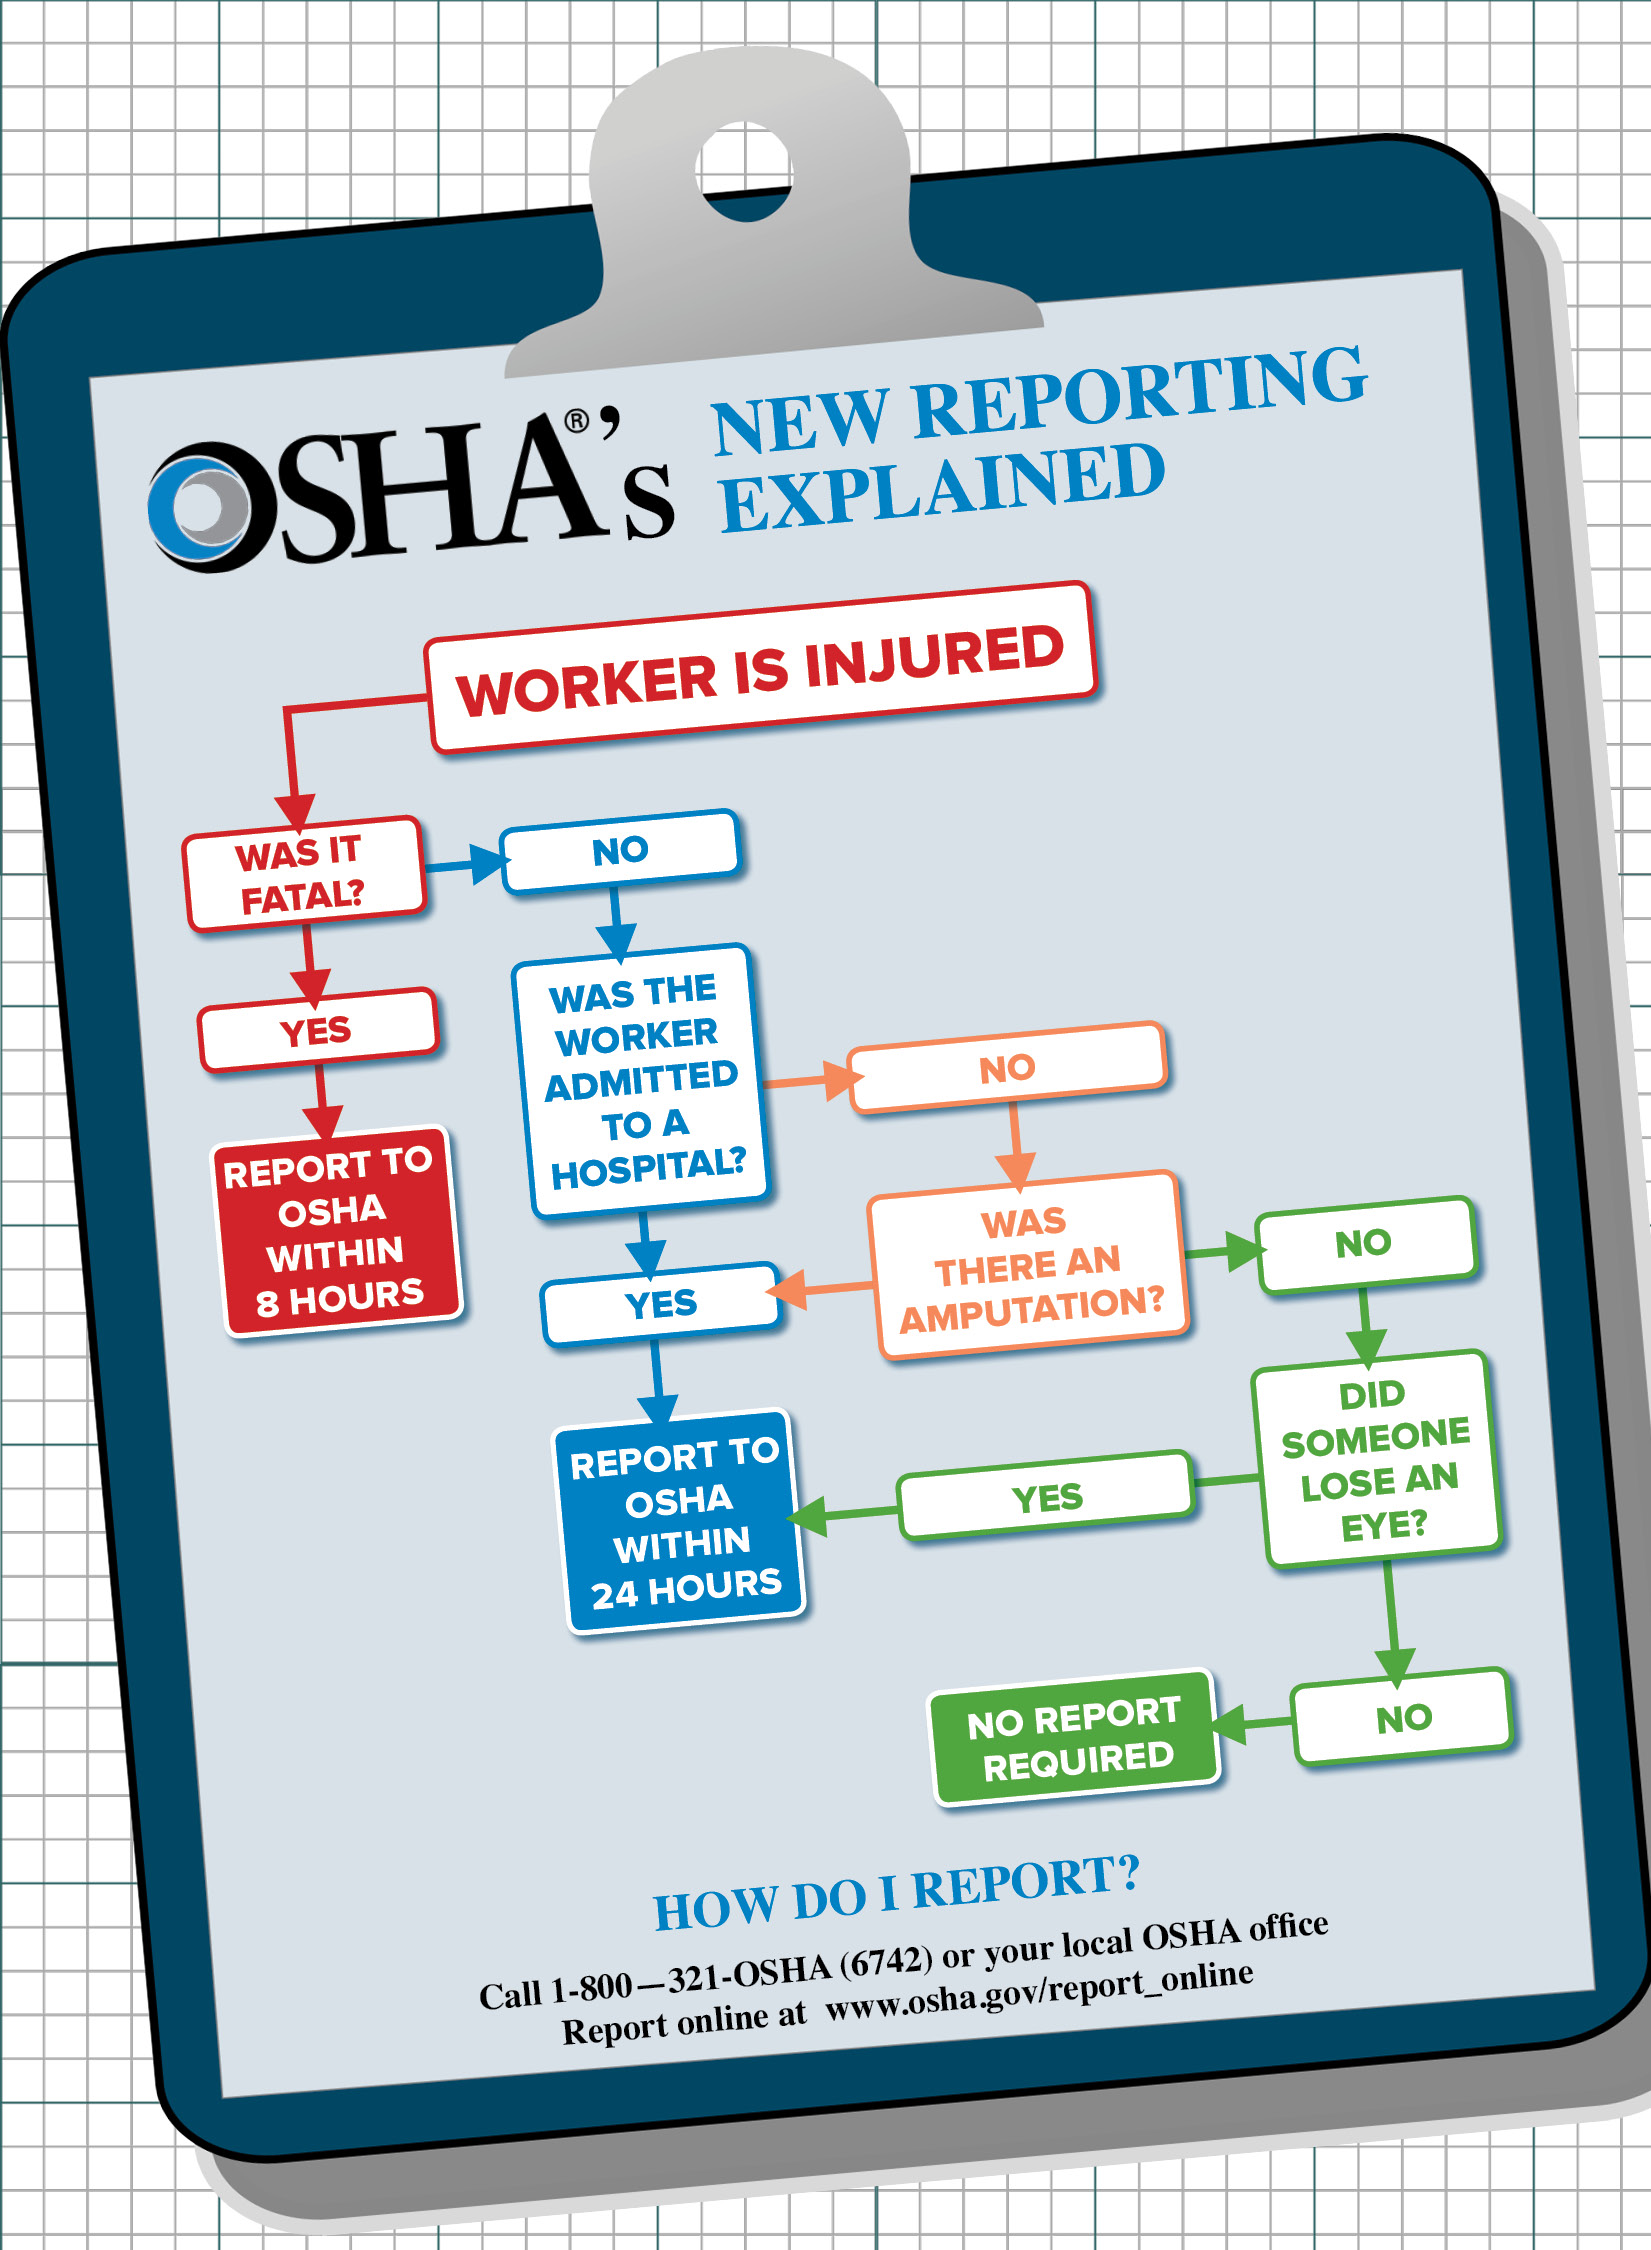 OSHA's New Reporting Explained